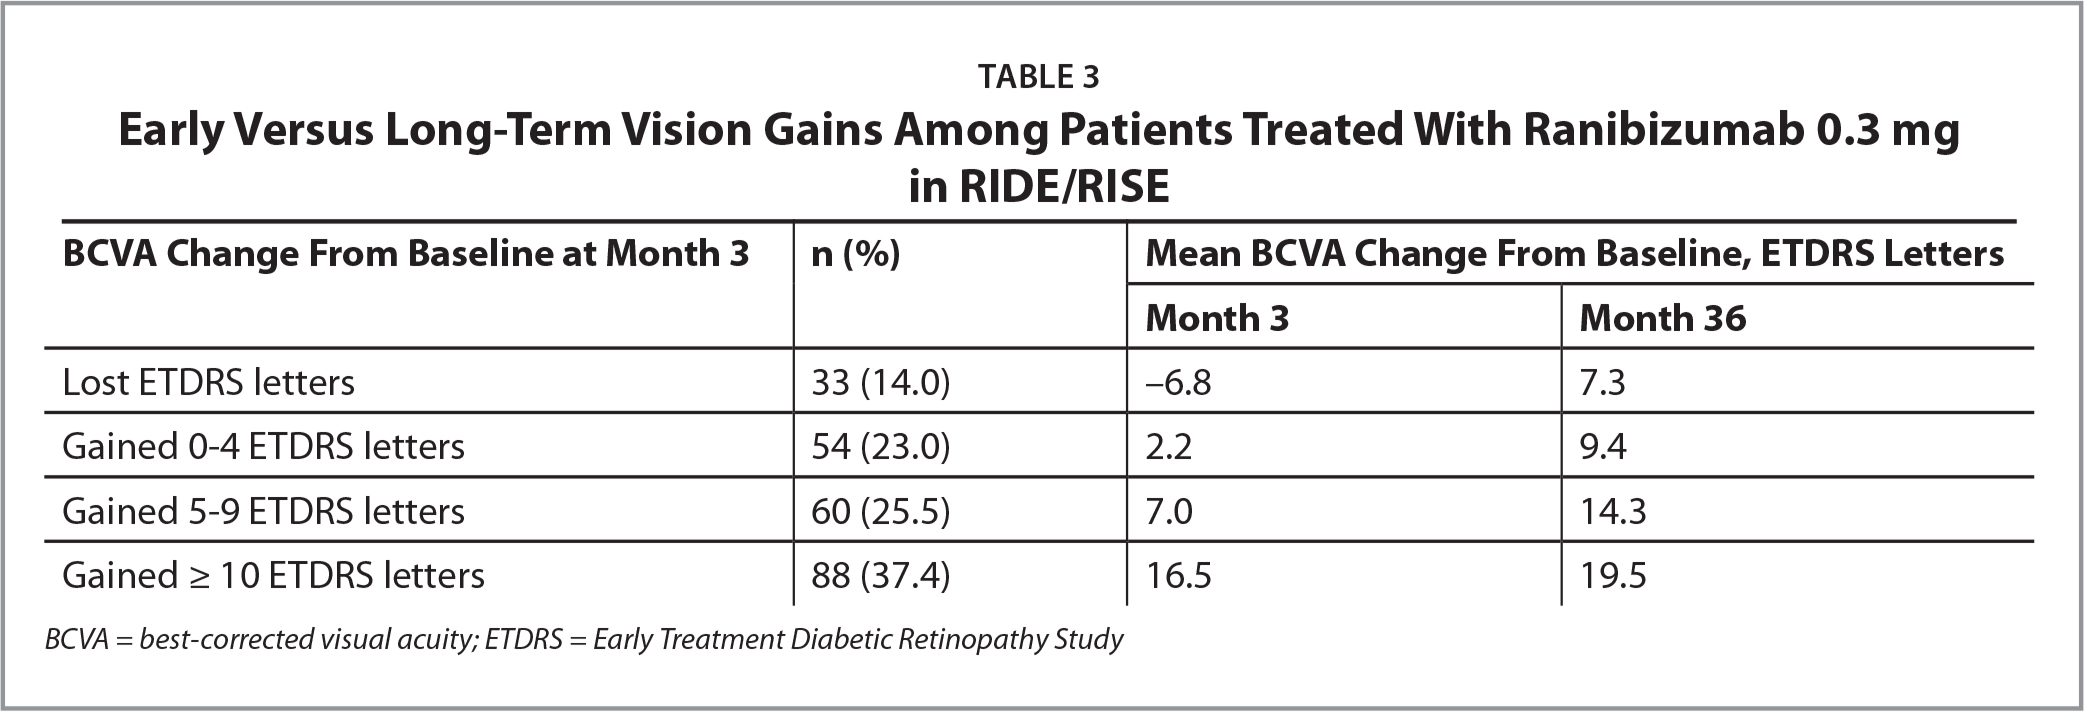 Early Versus Long-Term Vision Gains Among Patients Treated With Ranibizumab 0.3 mgin RIDE/RISE